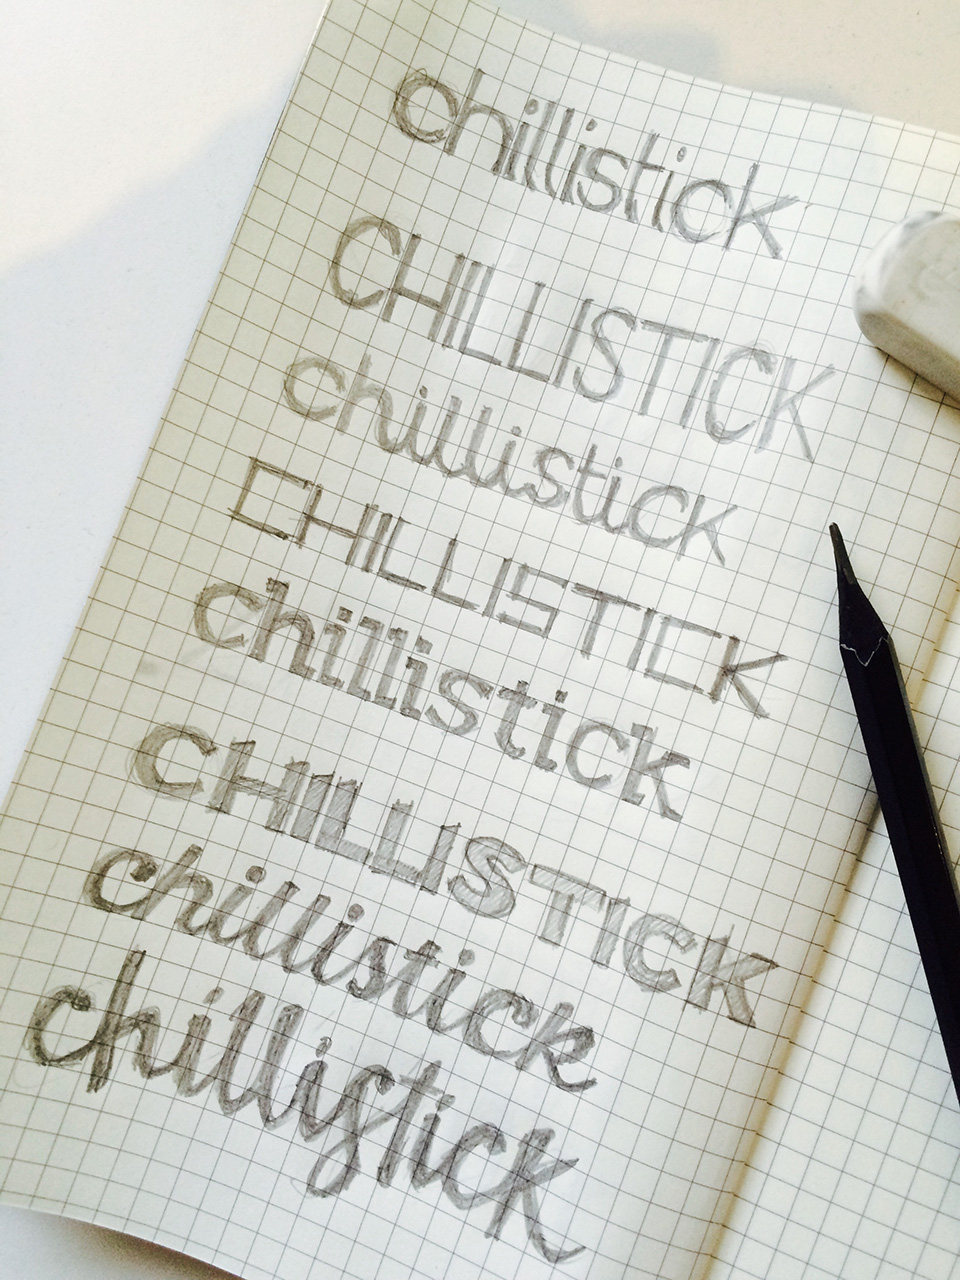 chillistick-logo_sketches